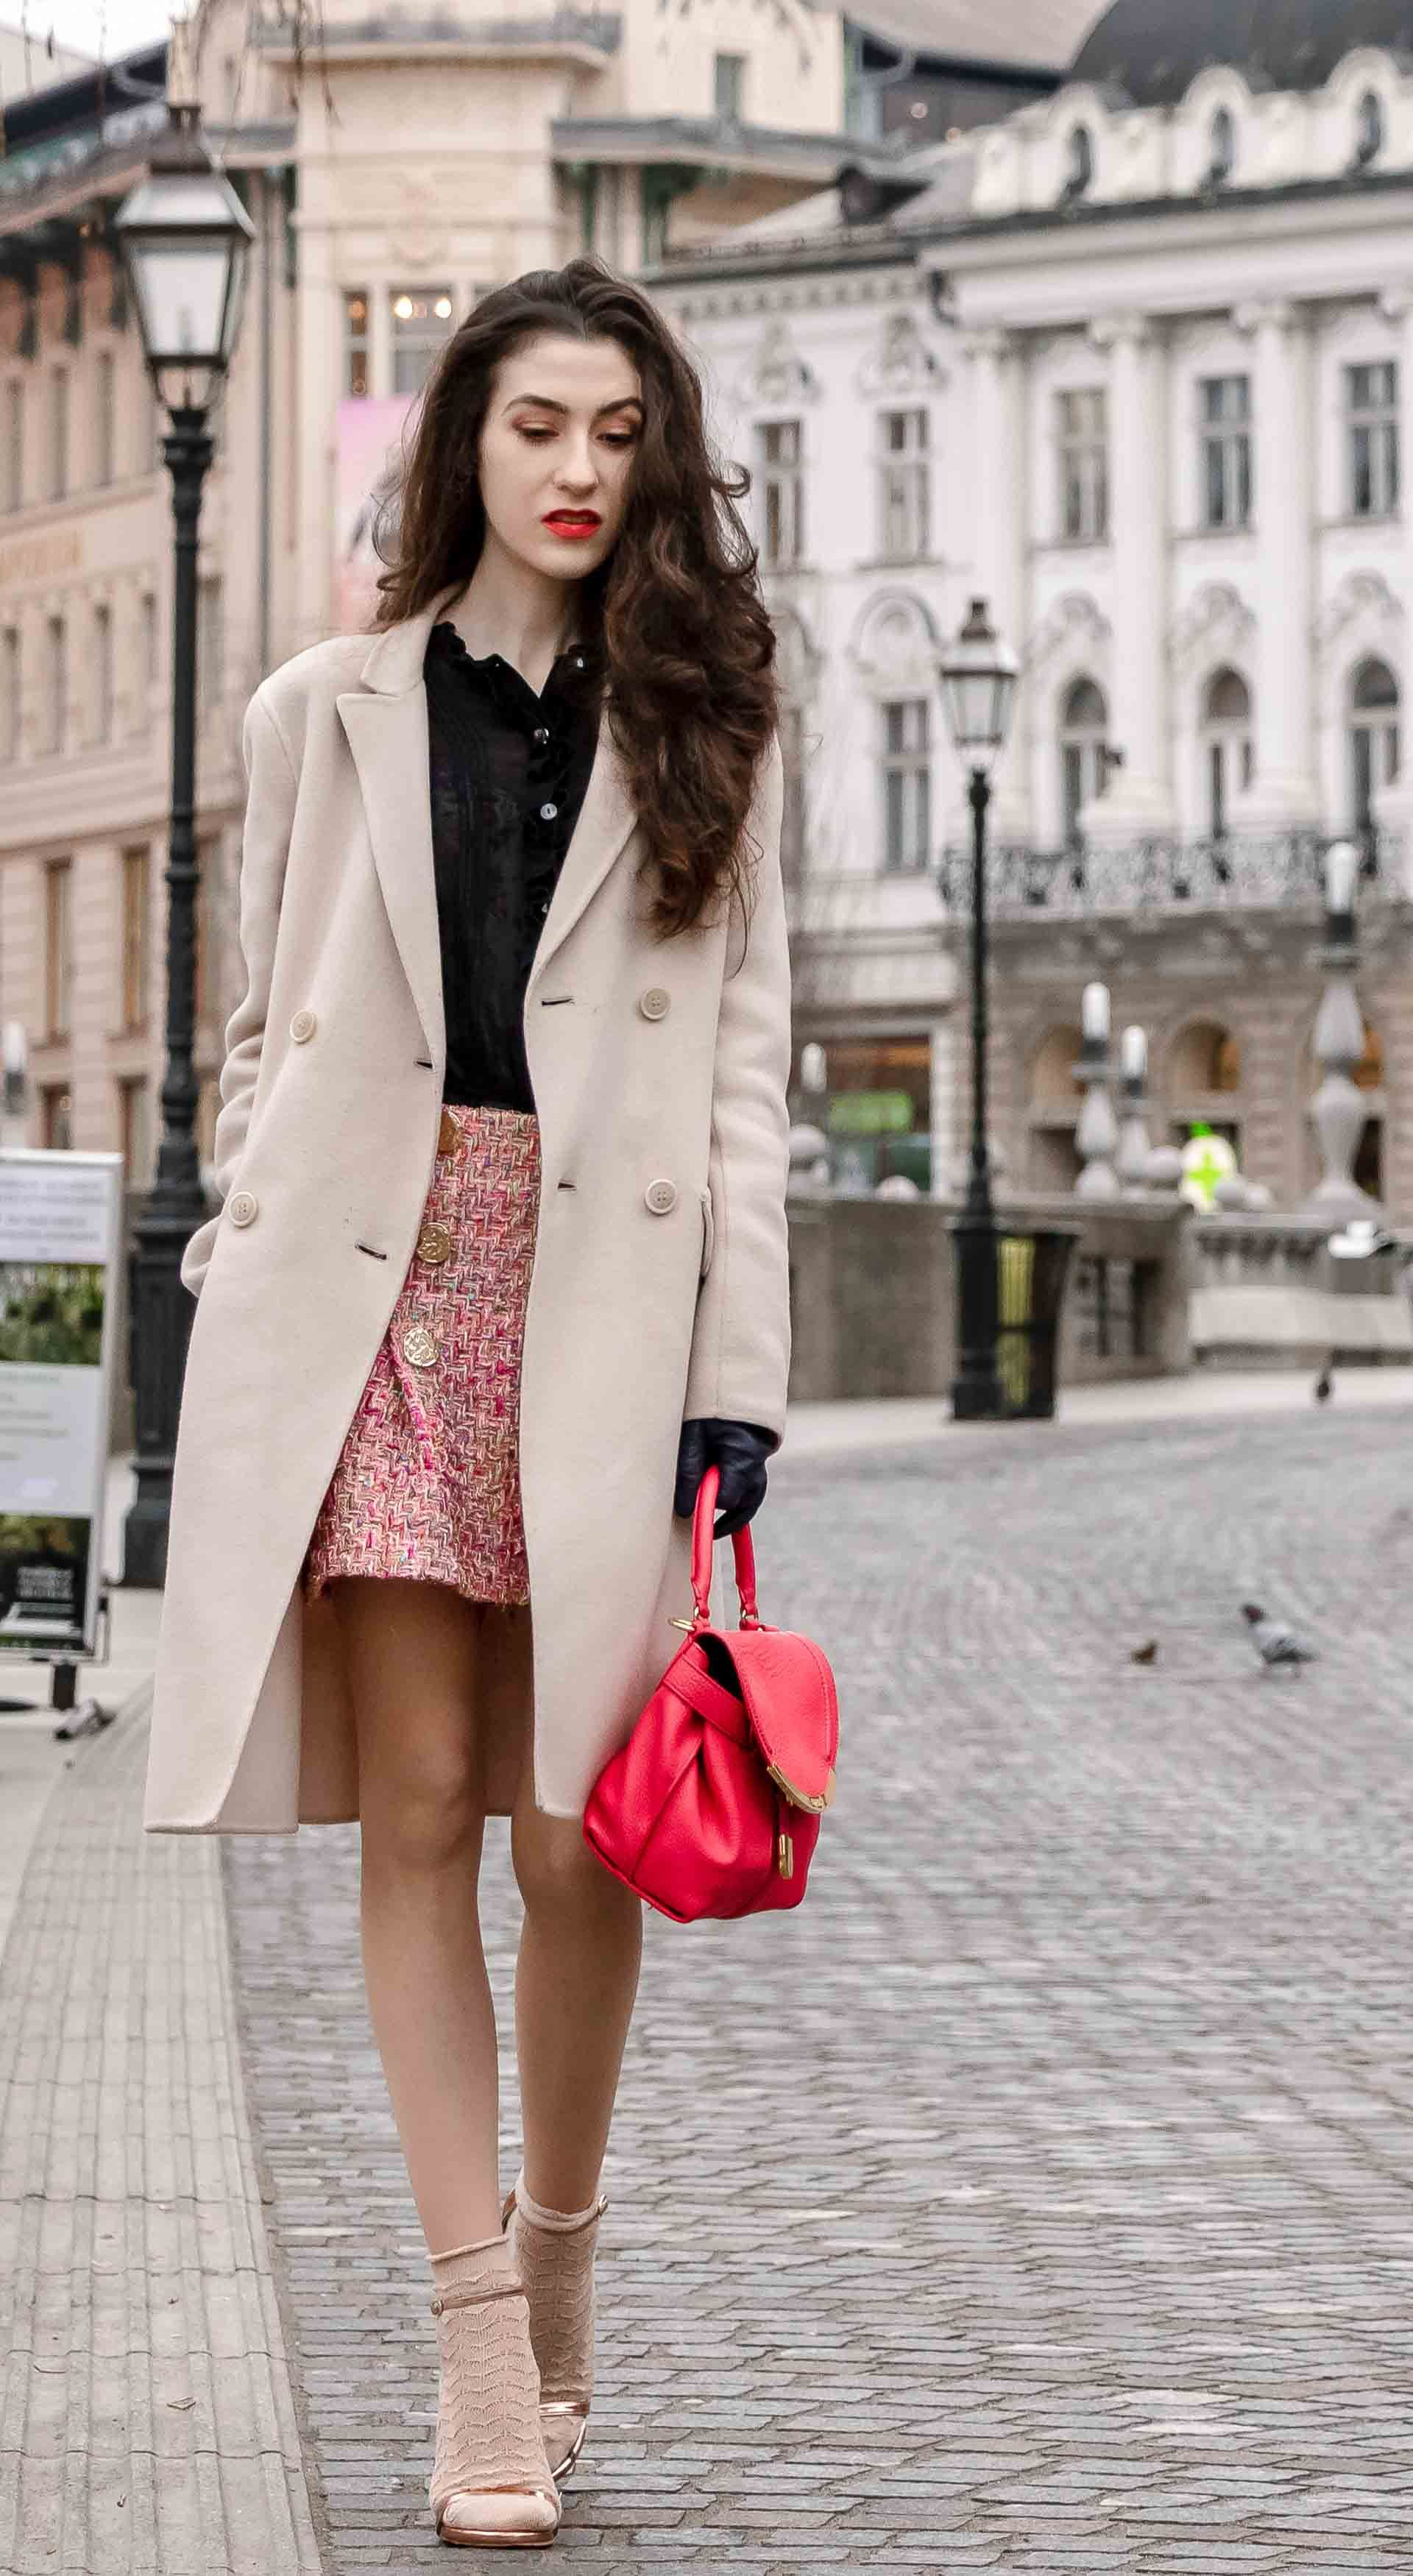 d957dee62694 Fashion Blogger Veronika Lipar of Brunette from Wall Street sharing how to  wear socks and sandals on the street this spring  fashion  blogpost  socks  ...